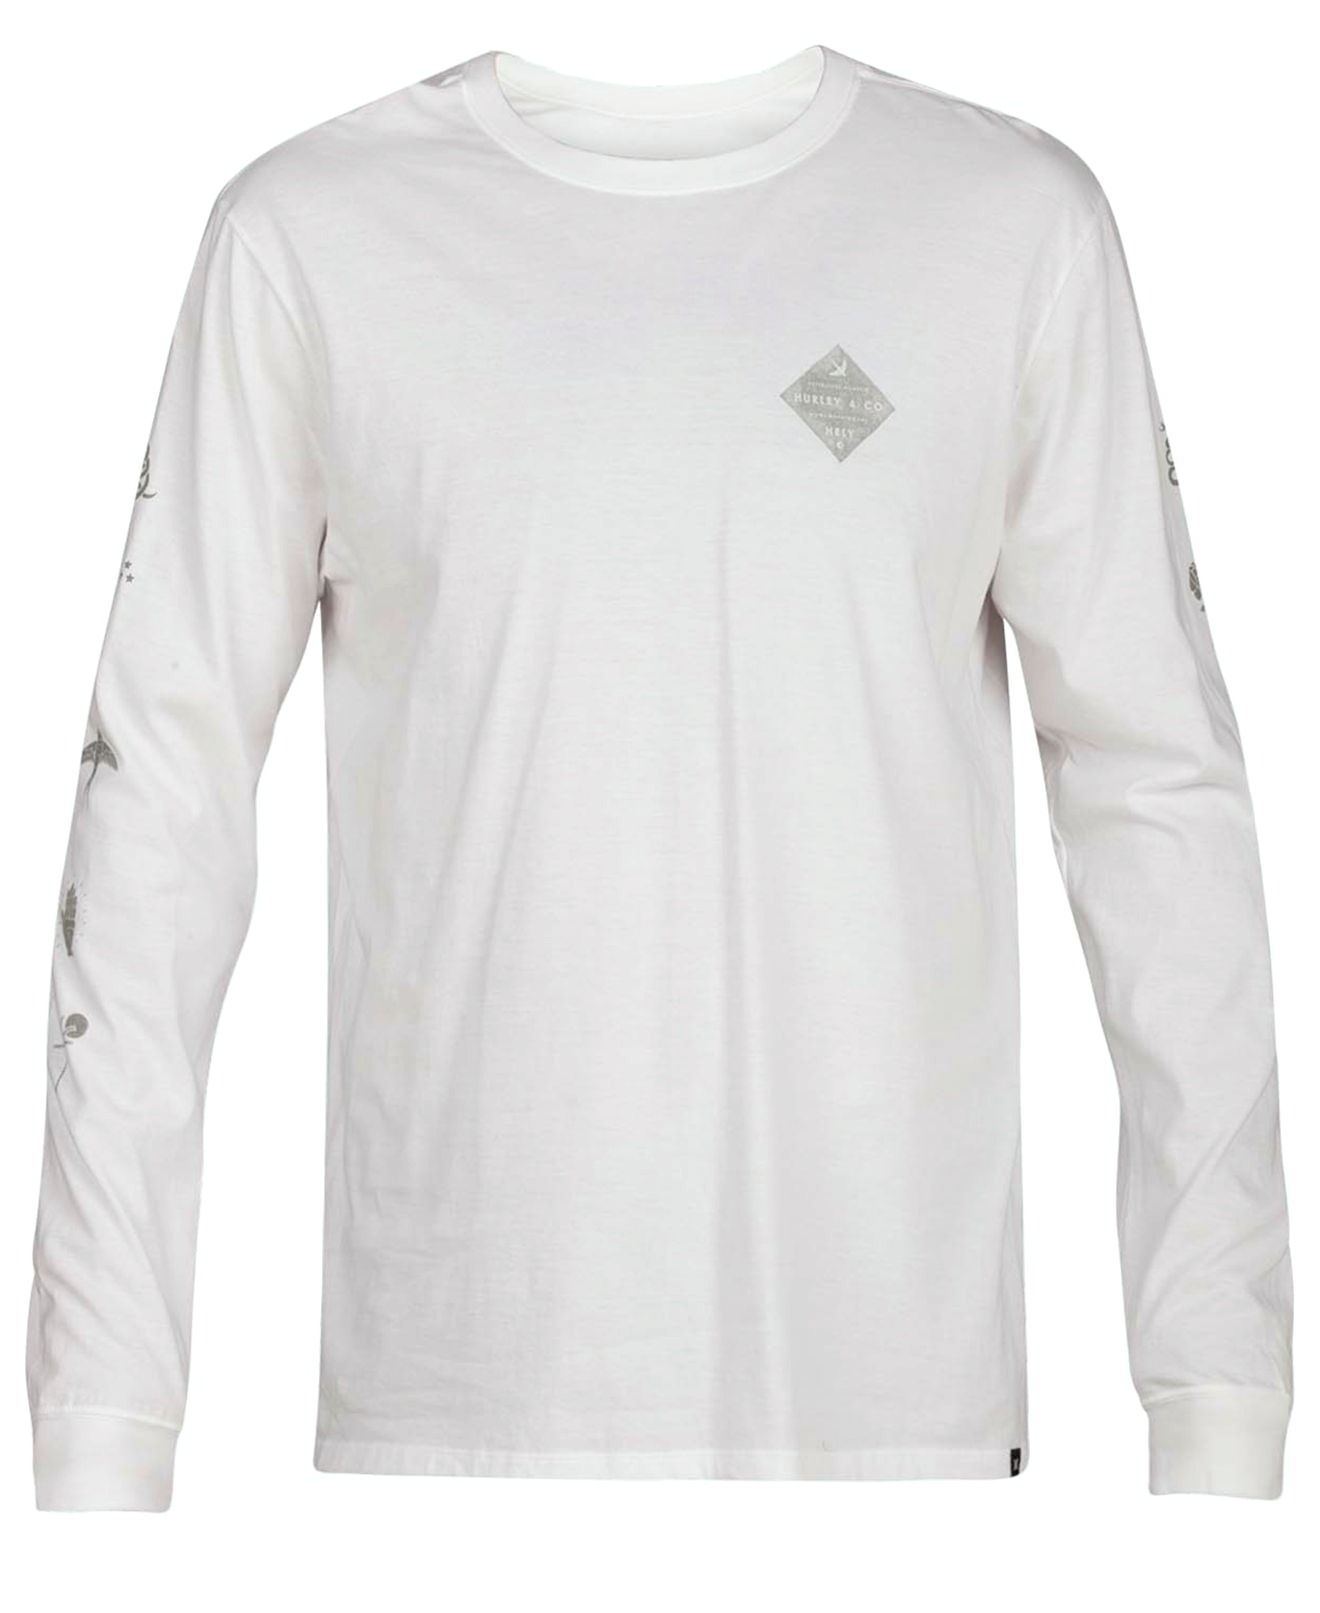 New-Hurley-NEW-White-Mens-Size-XL-Crew-Long-Sleeve-Graphic-Tee-T-Shirt-30-095